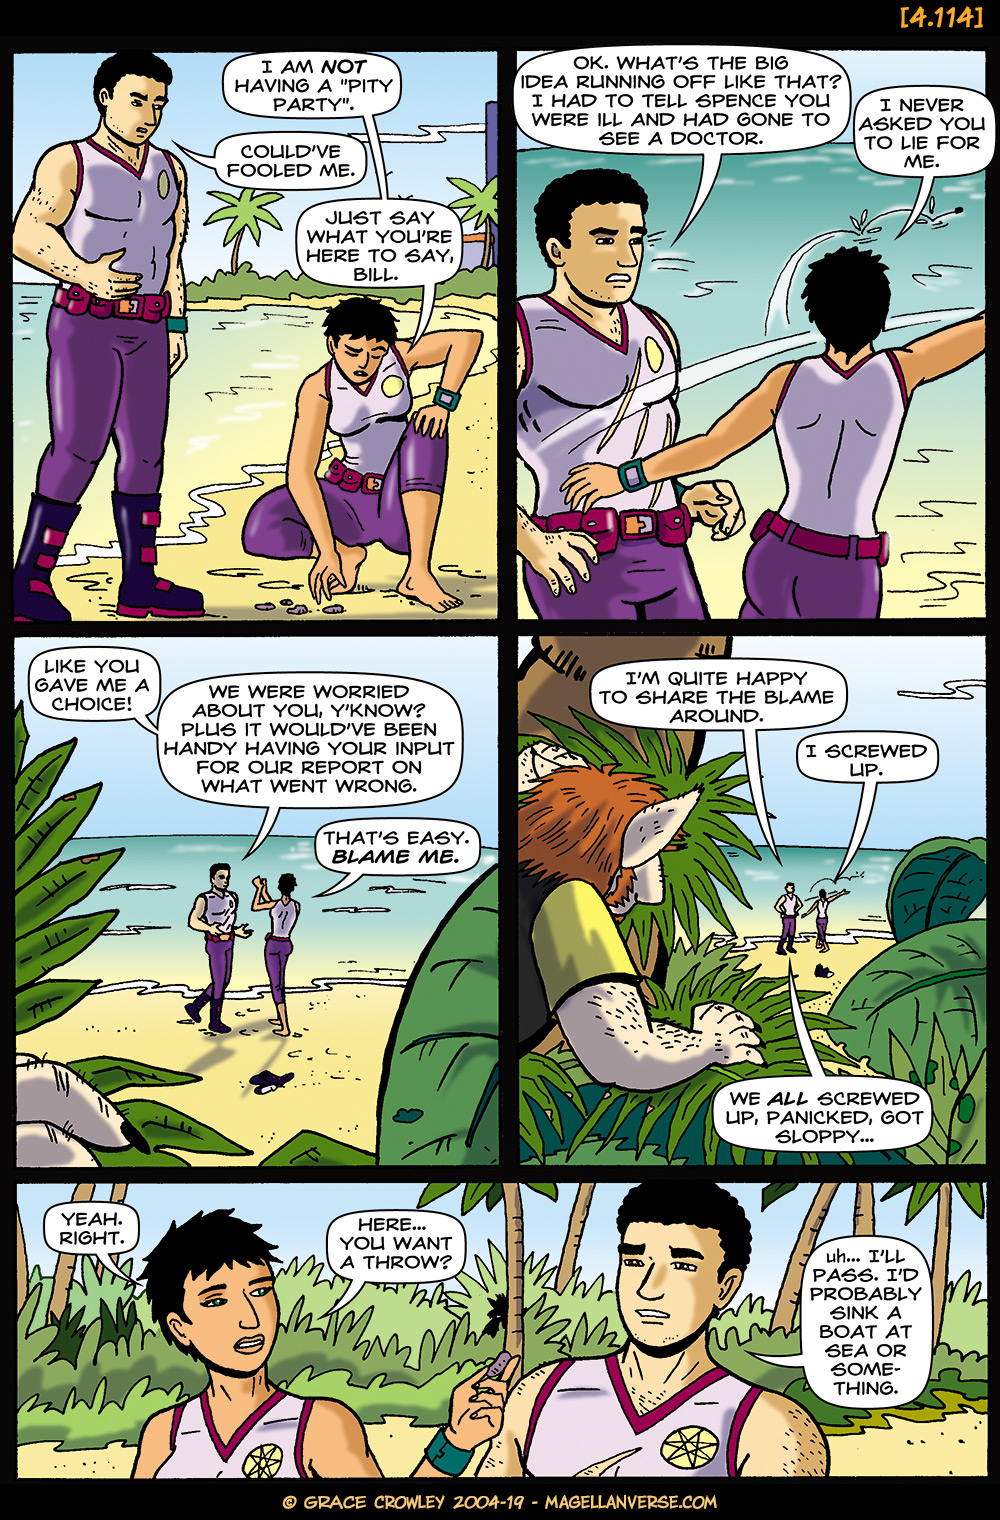 Page 4.114